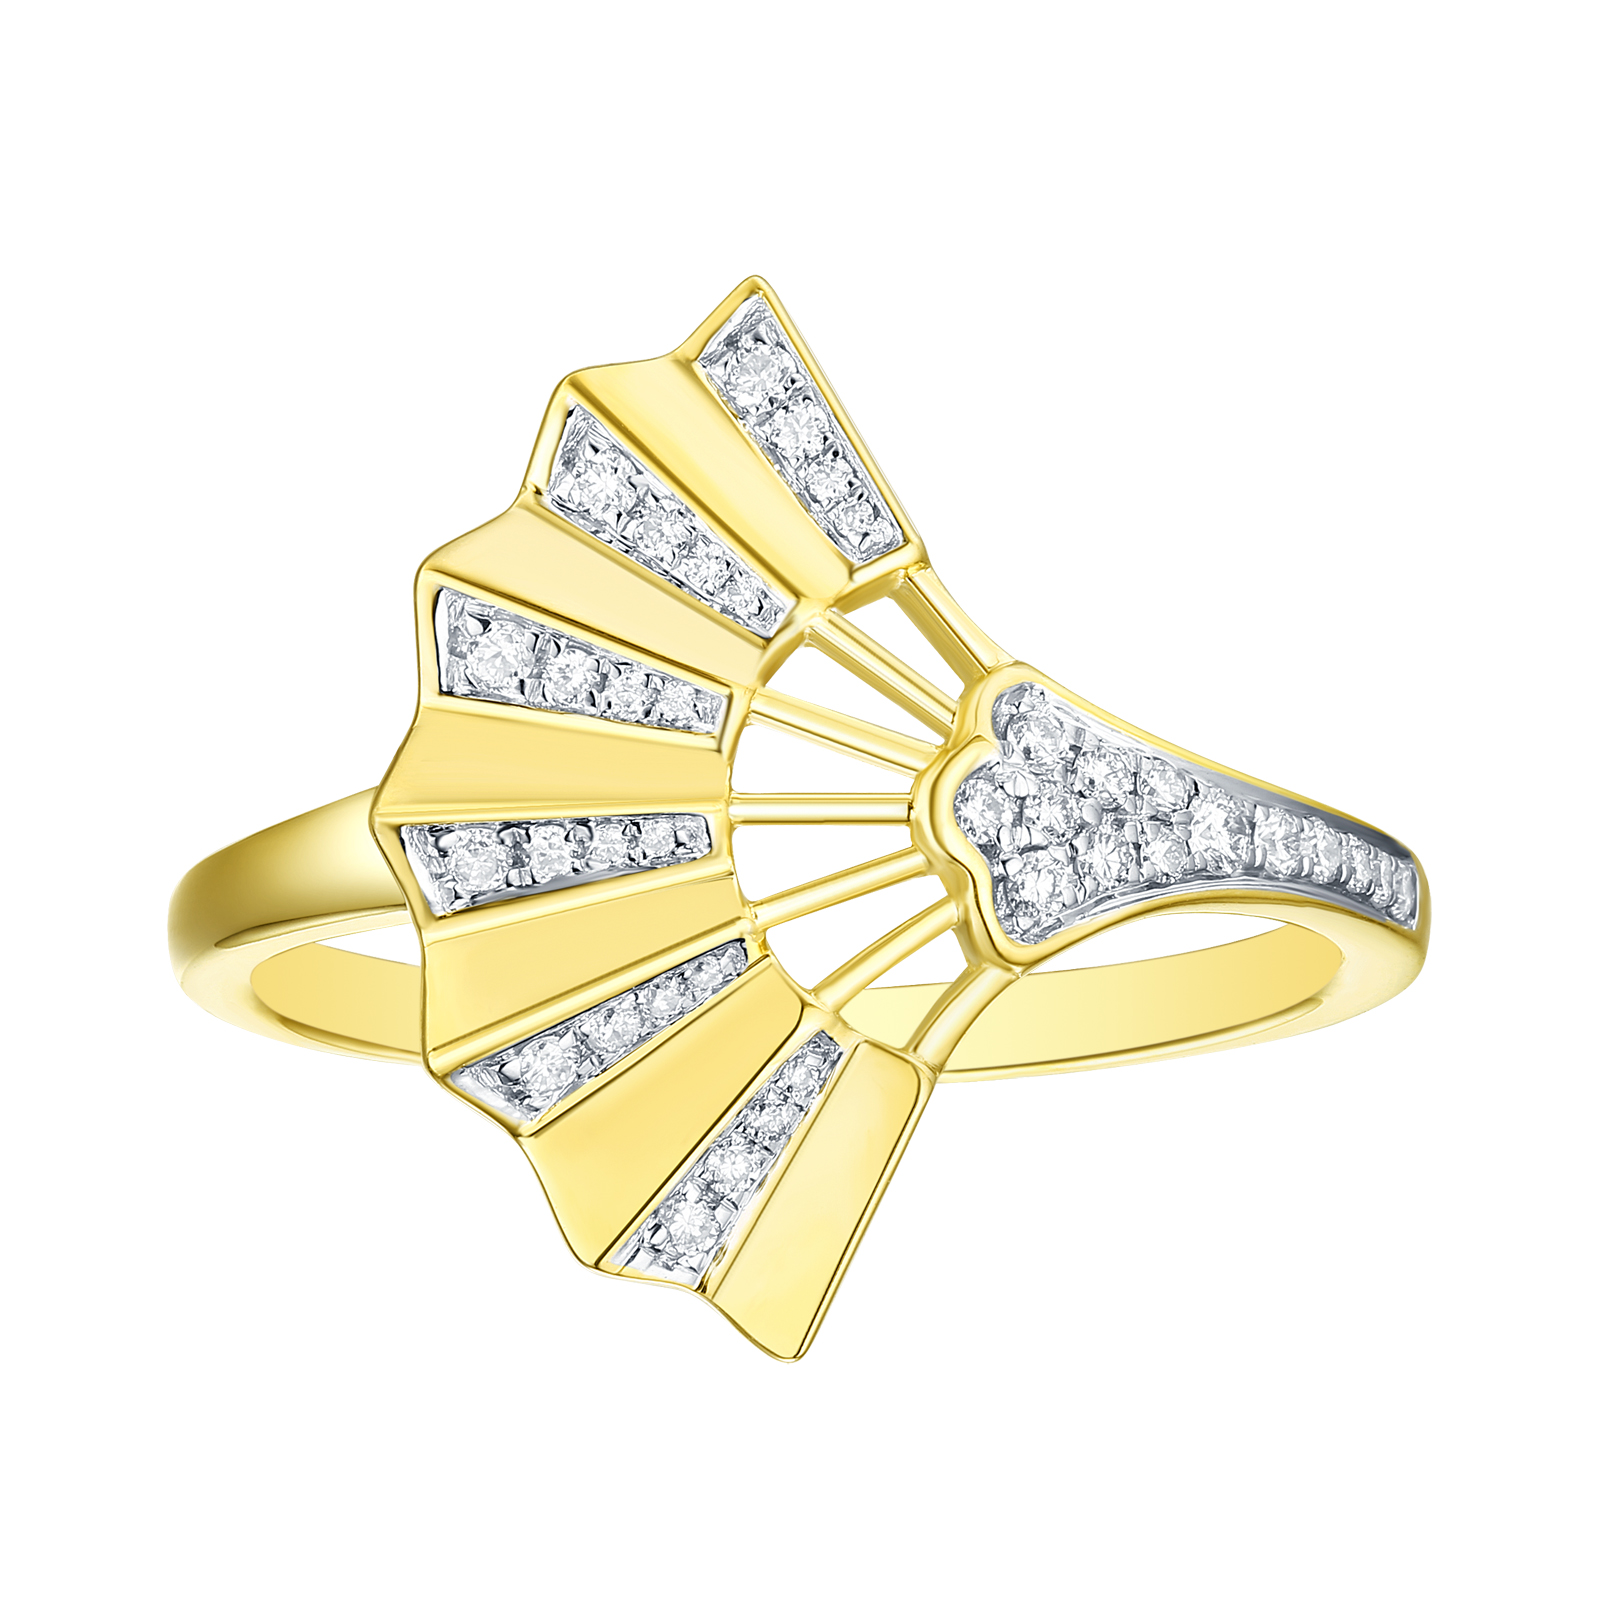 R29924WHT- 14K Yellow Gold Diamond Ring, 0.15 TCW